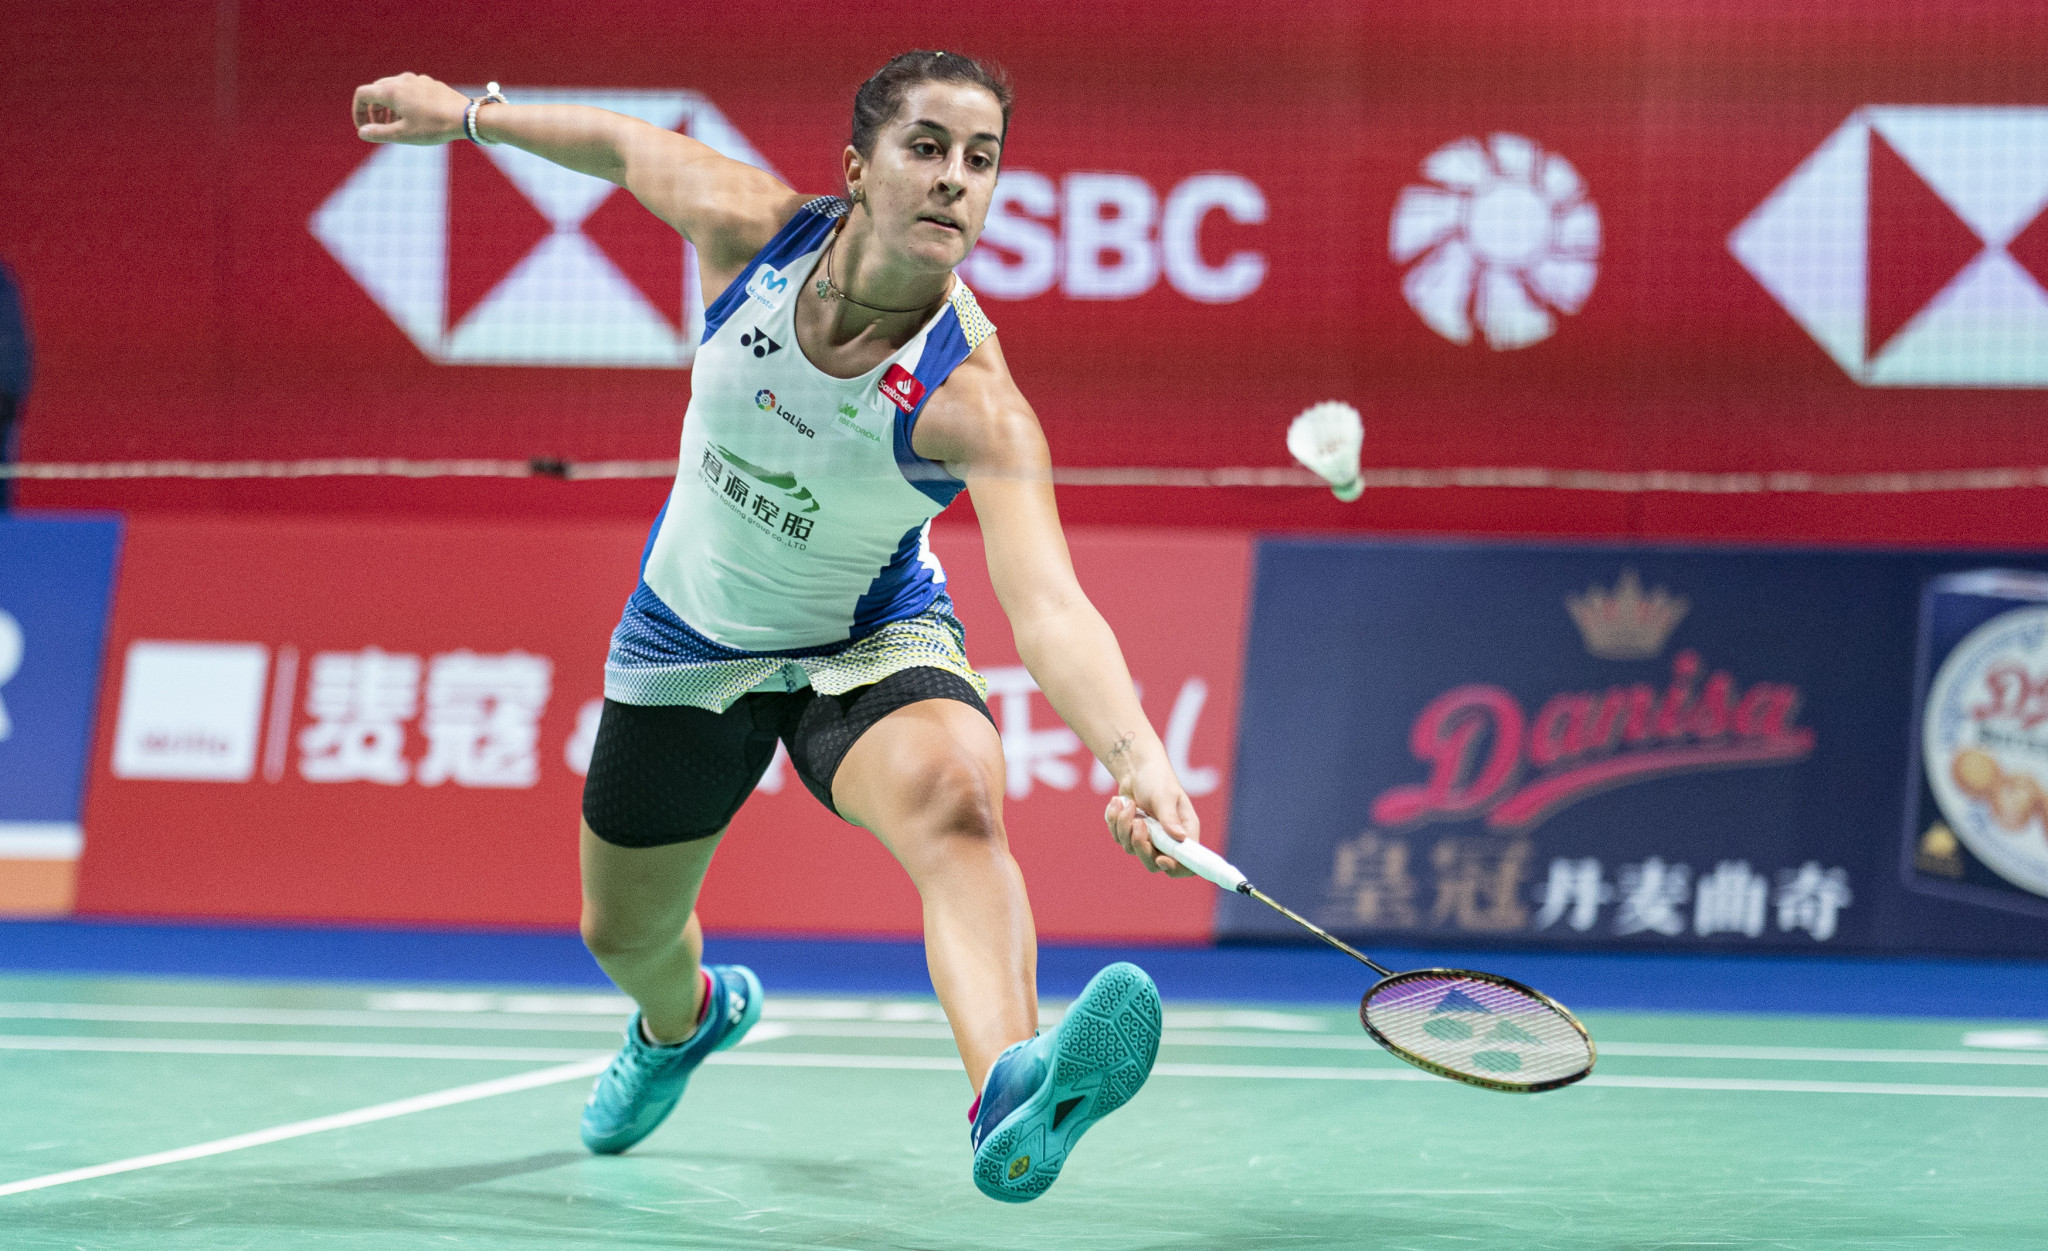 Top seeds ease through to last 16 at European Badminton Championships